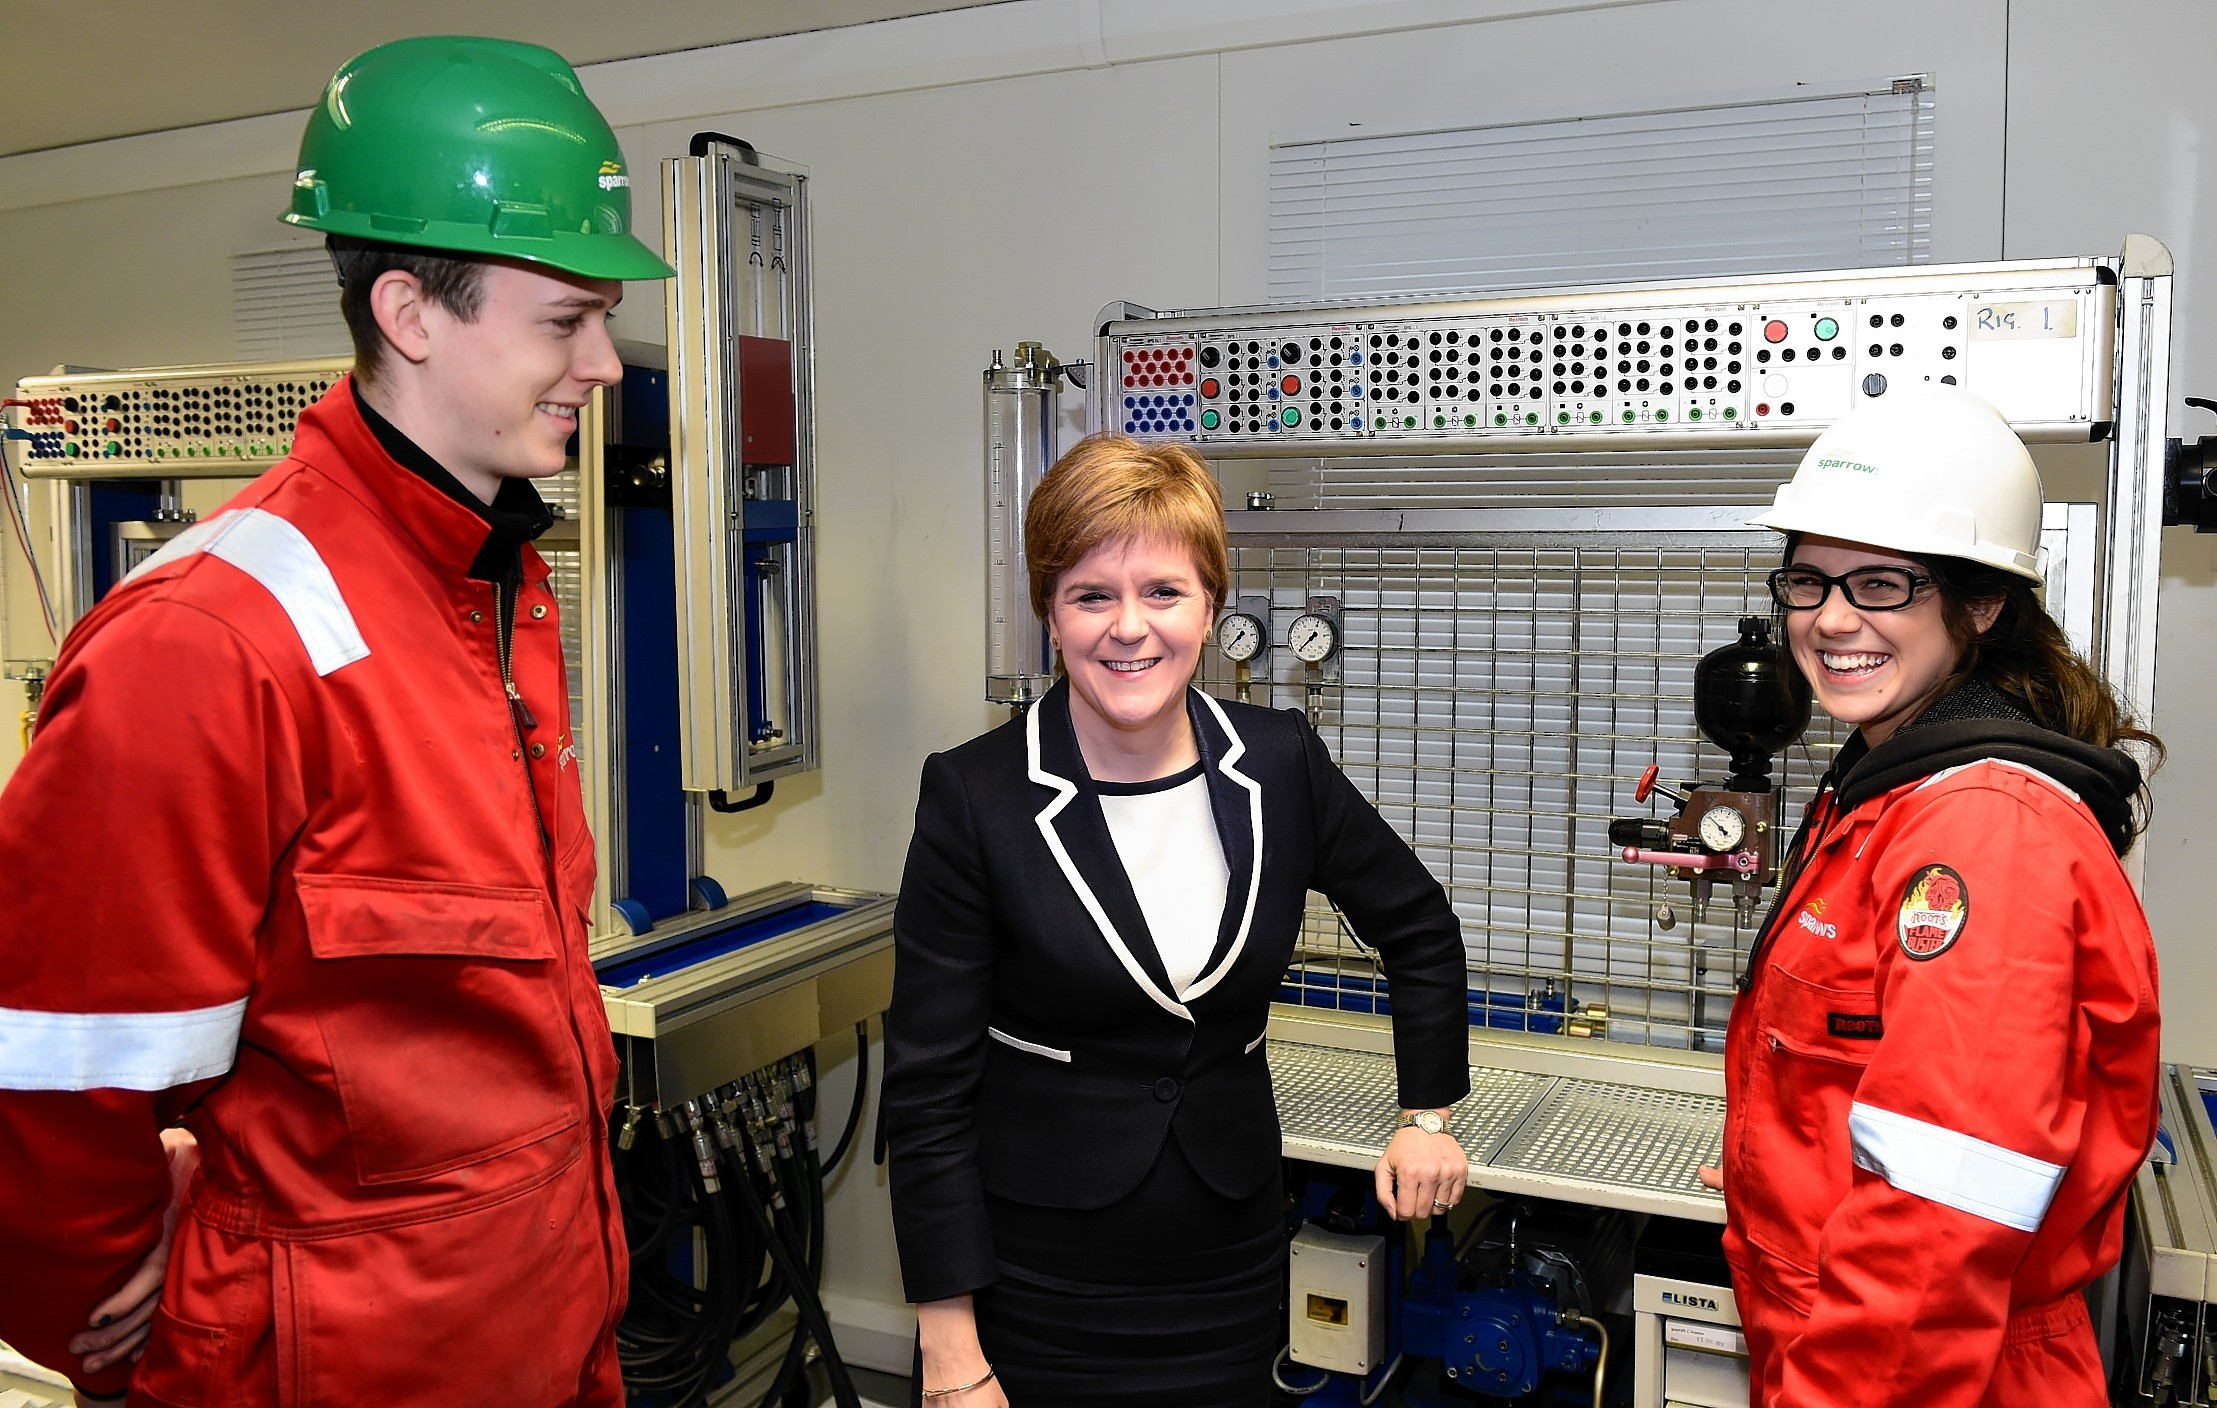 First Minister Nicola Sturgeon at Sparrows Training Centre, with apprentice's Leanne Brown and Adam Clark (left).